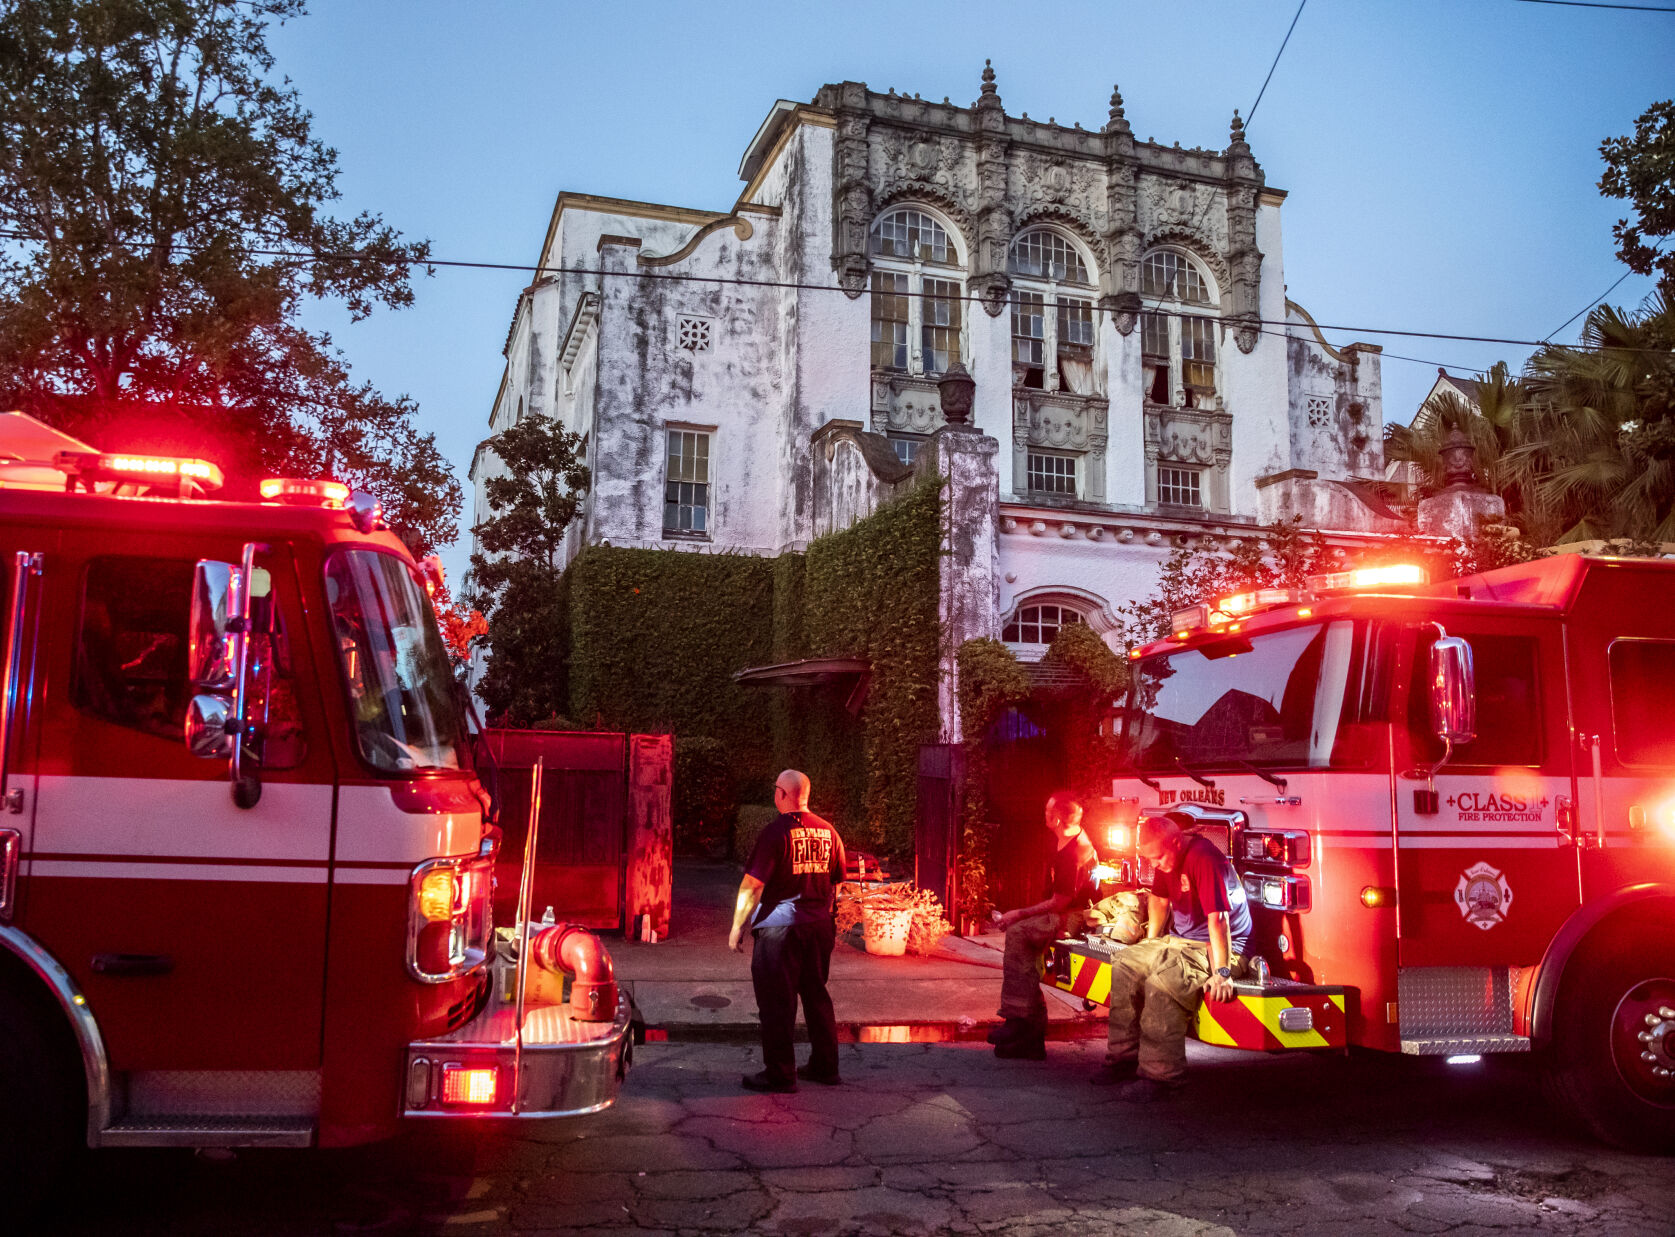 Beyonce And Jay-Z's New Orleans Mansion Was Damaged By Fire [VIDEO]